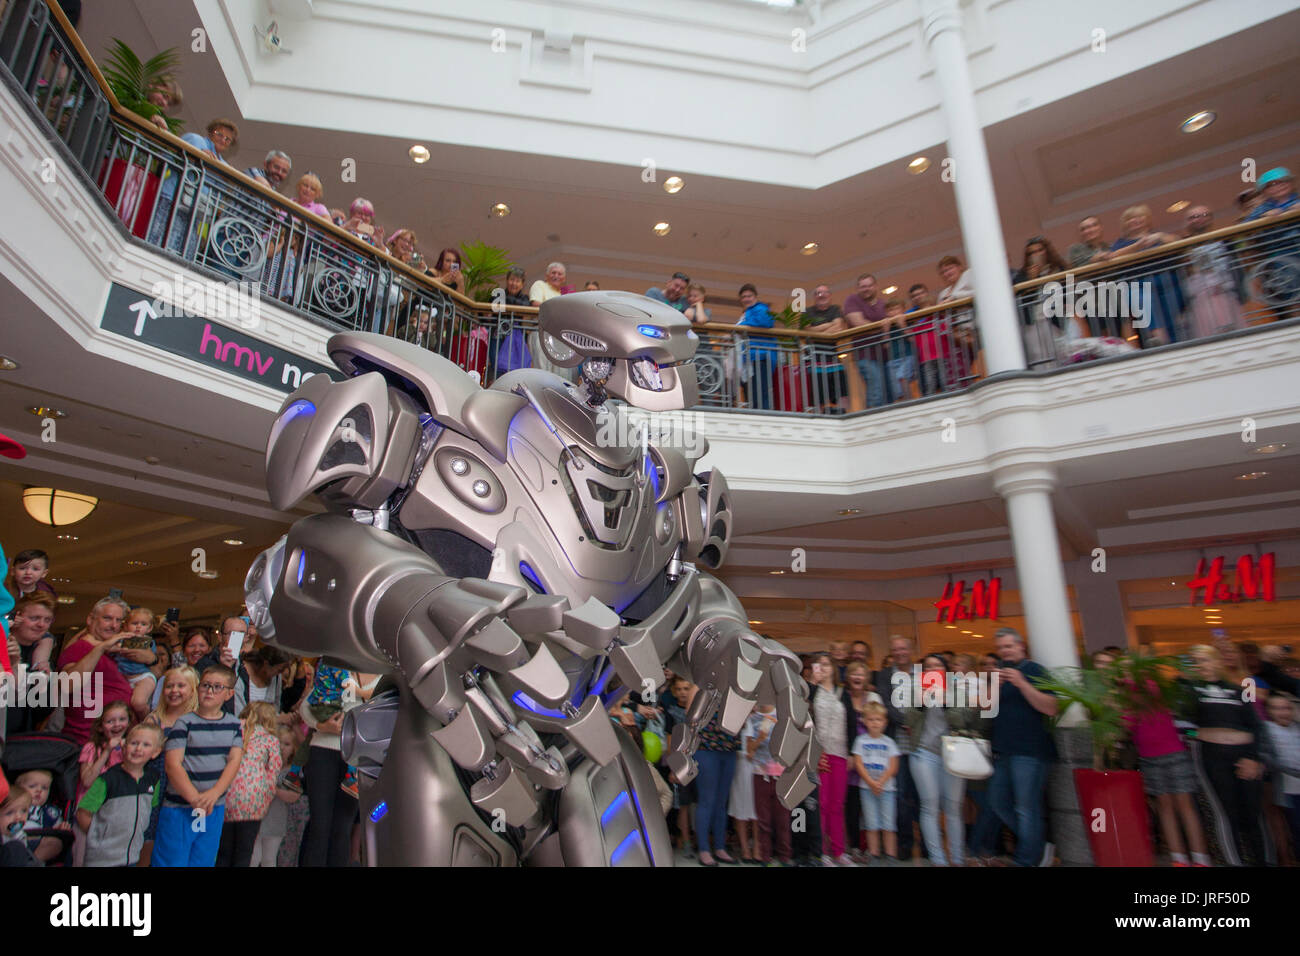 Preston, Lancashire, UK . Titan the robot, wearing an exoskeleton suit, wows the crowds at St George's Centre. - Stock Image